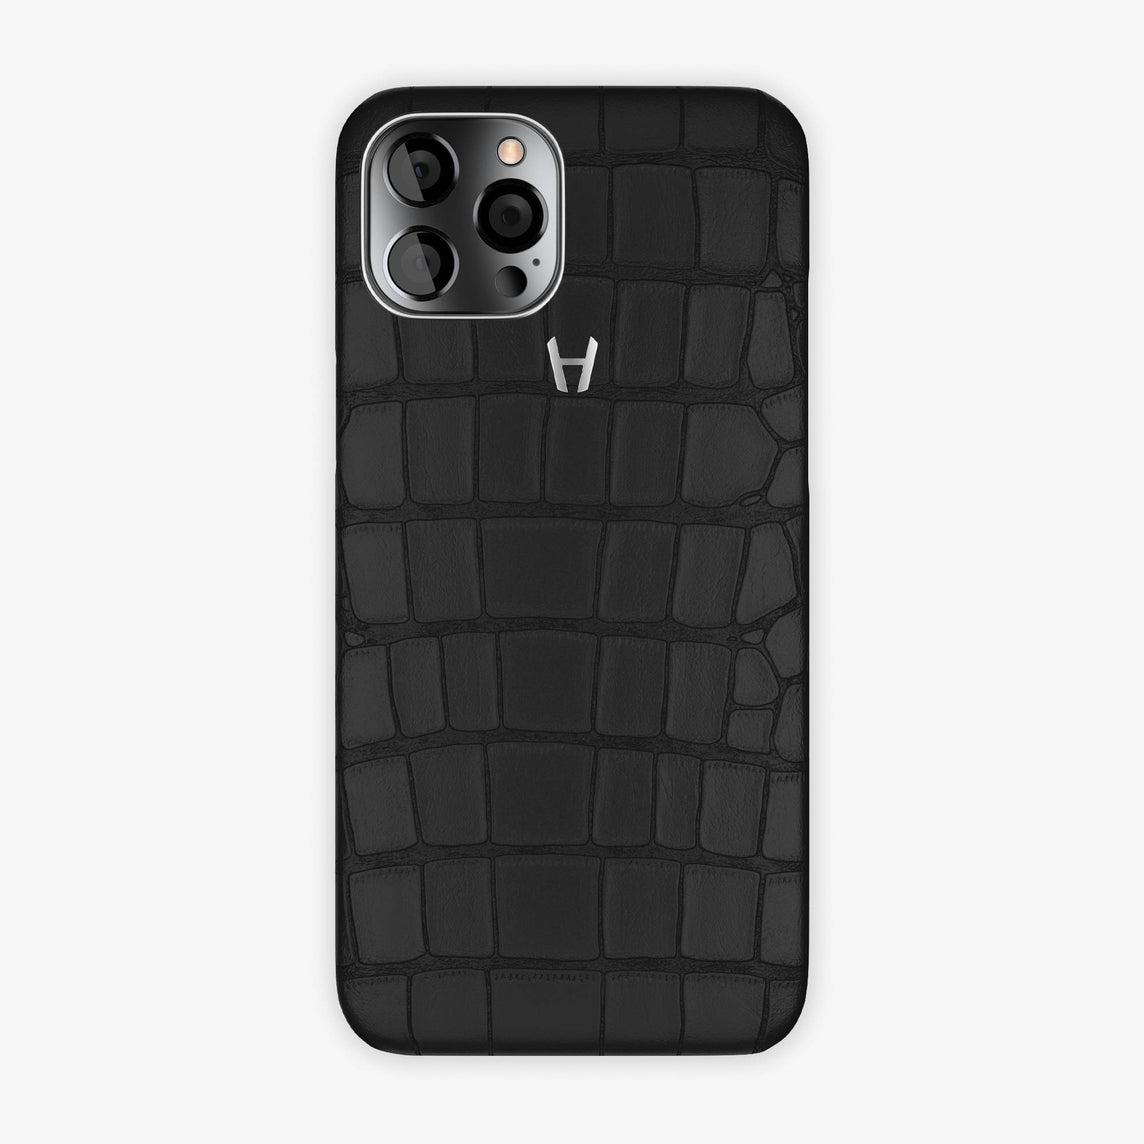 Alligator Case iPhone 12 Pro Max | Black - Stainless Steel